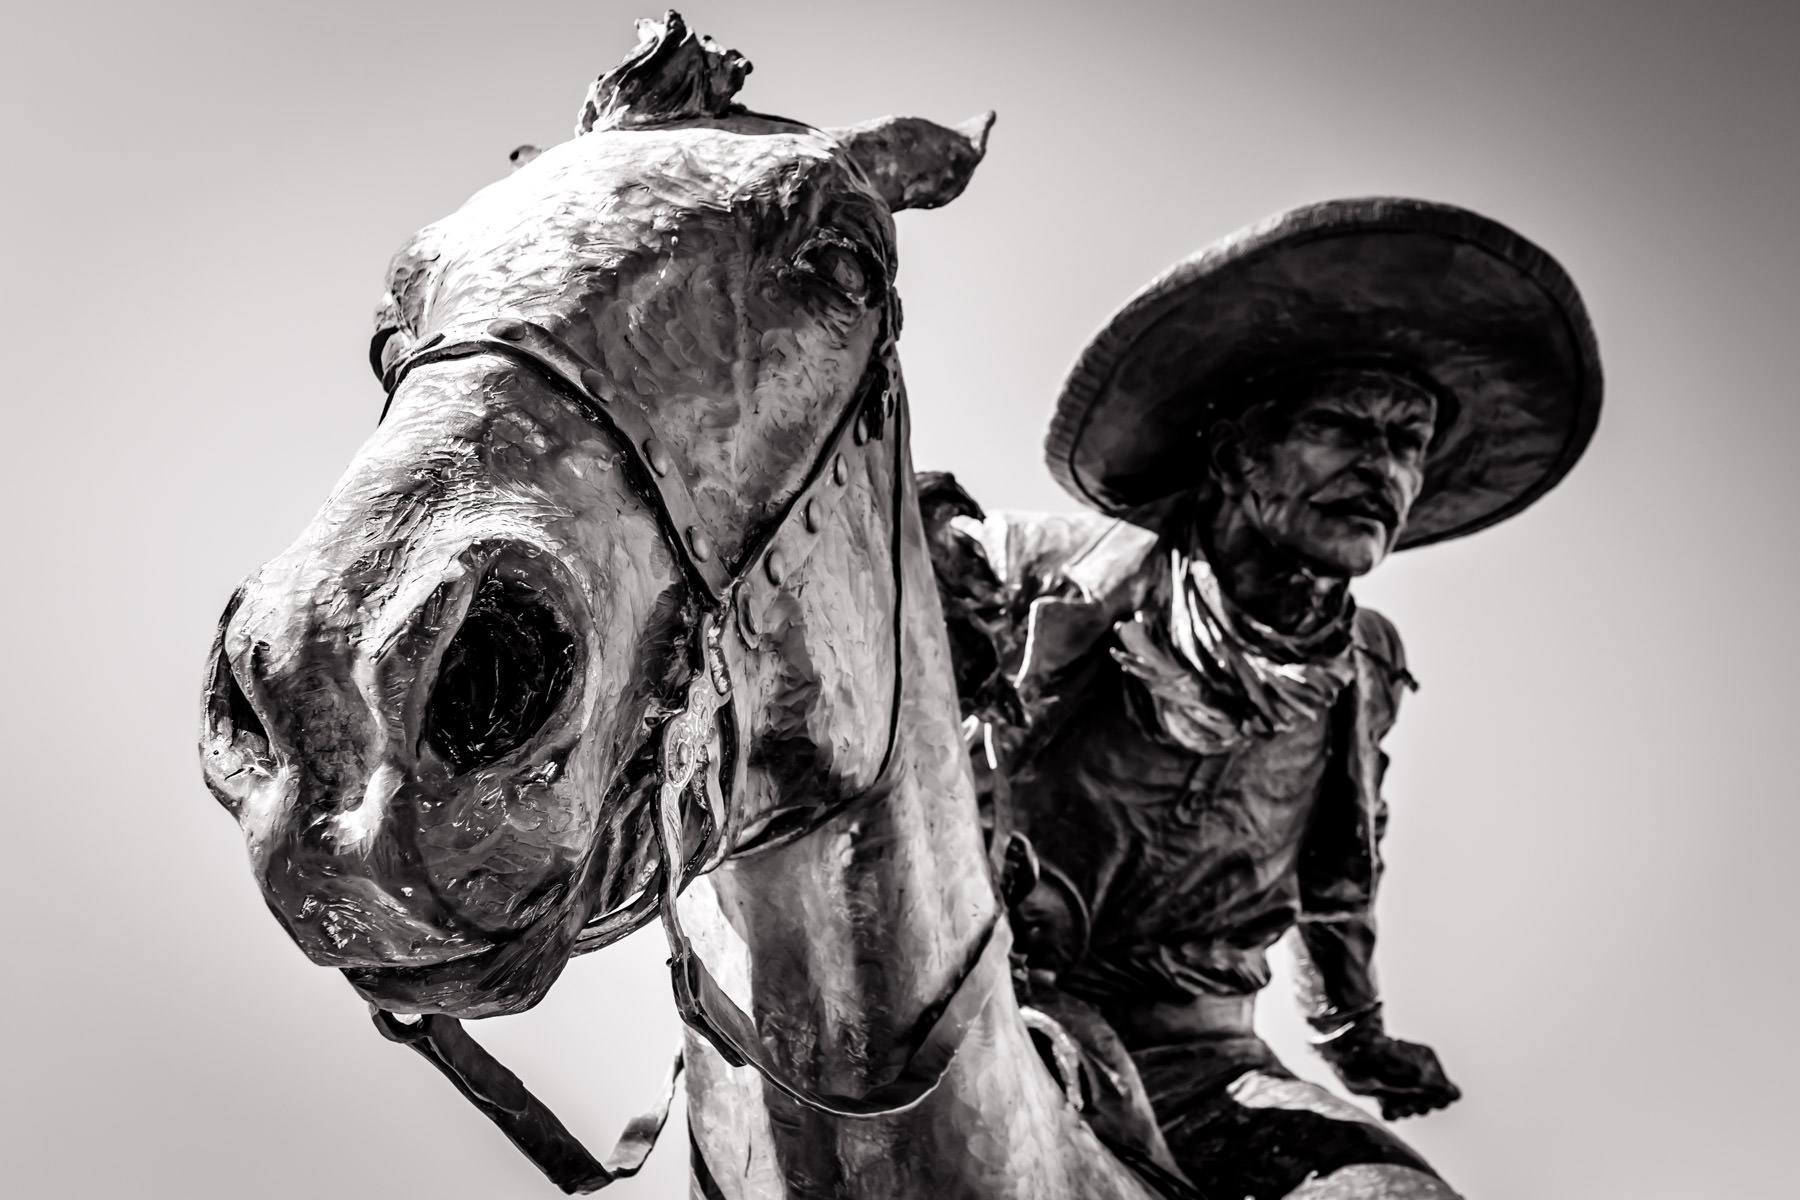 A bronze sculpture of a cowboy riding a horse makes up part of the larger collection of 49 bronze longhorn steer and 3 trail riders that commemorate the Shawnee Trail at Downtown Dallas' Pioneer Plaza.